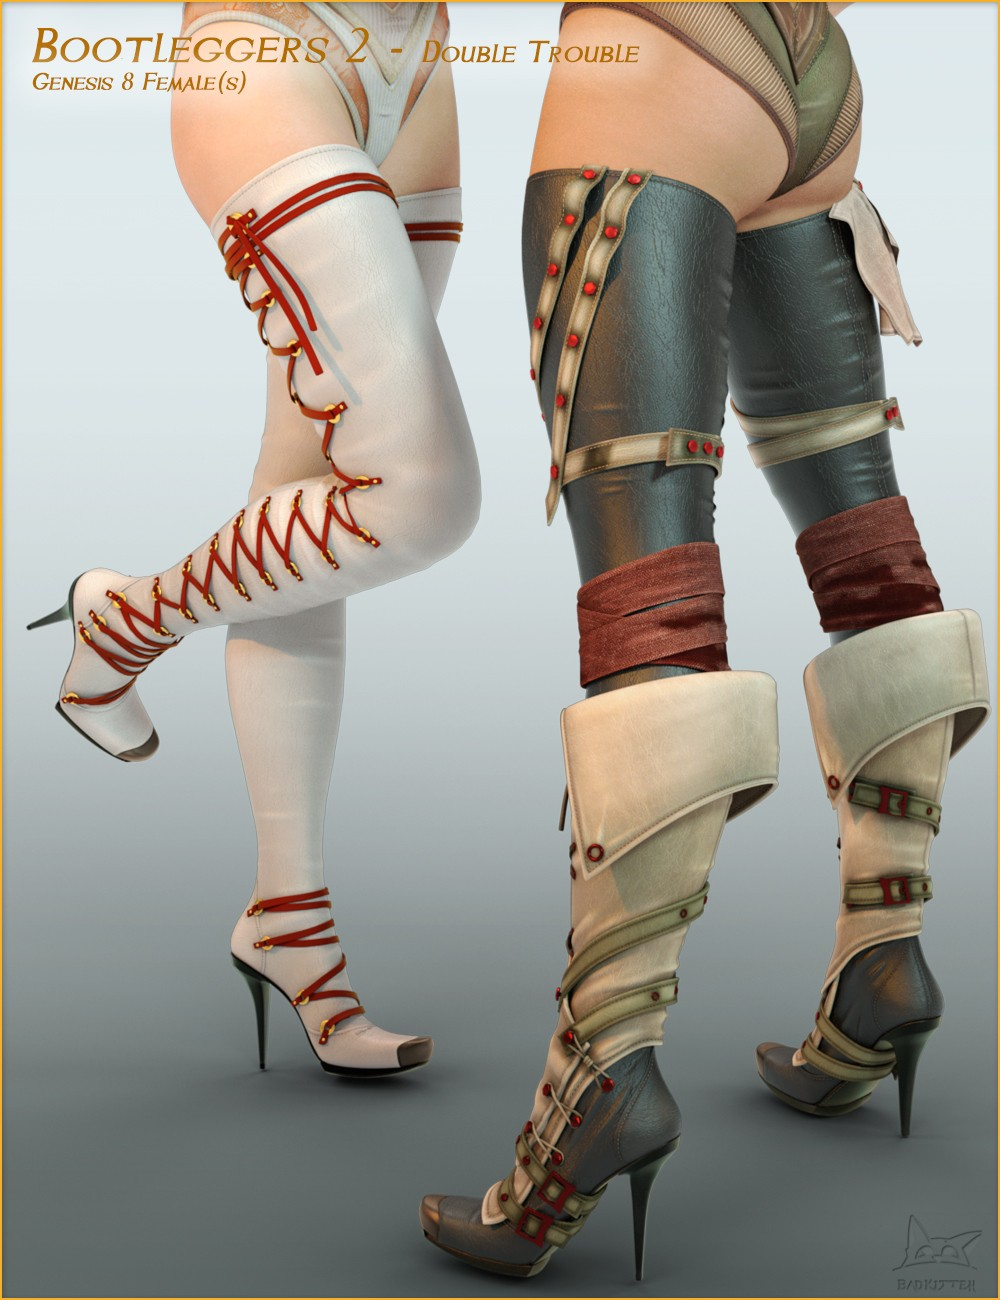 Bootleggers 2 - Double Trouble for Genesis 8 Female(s)